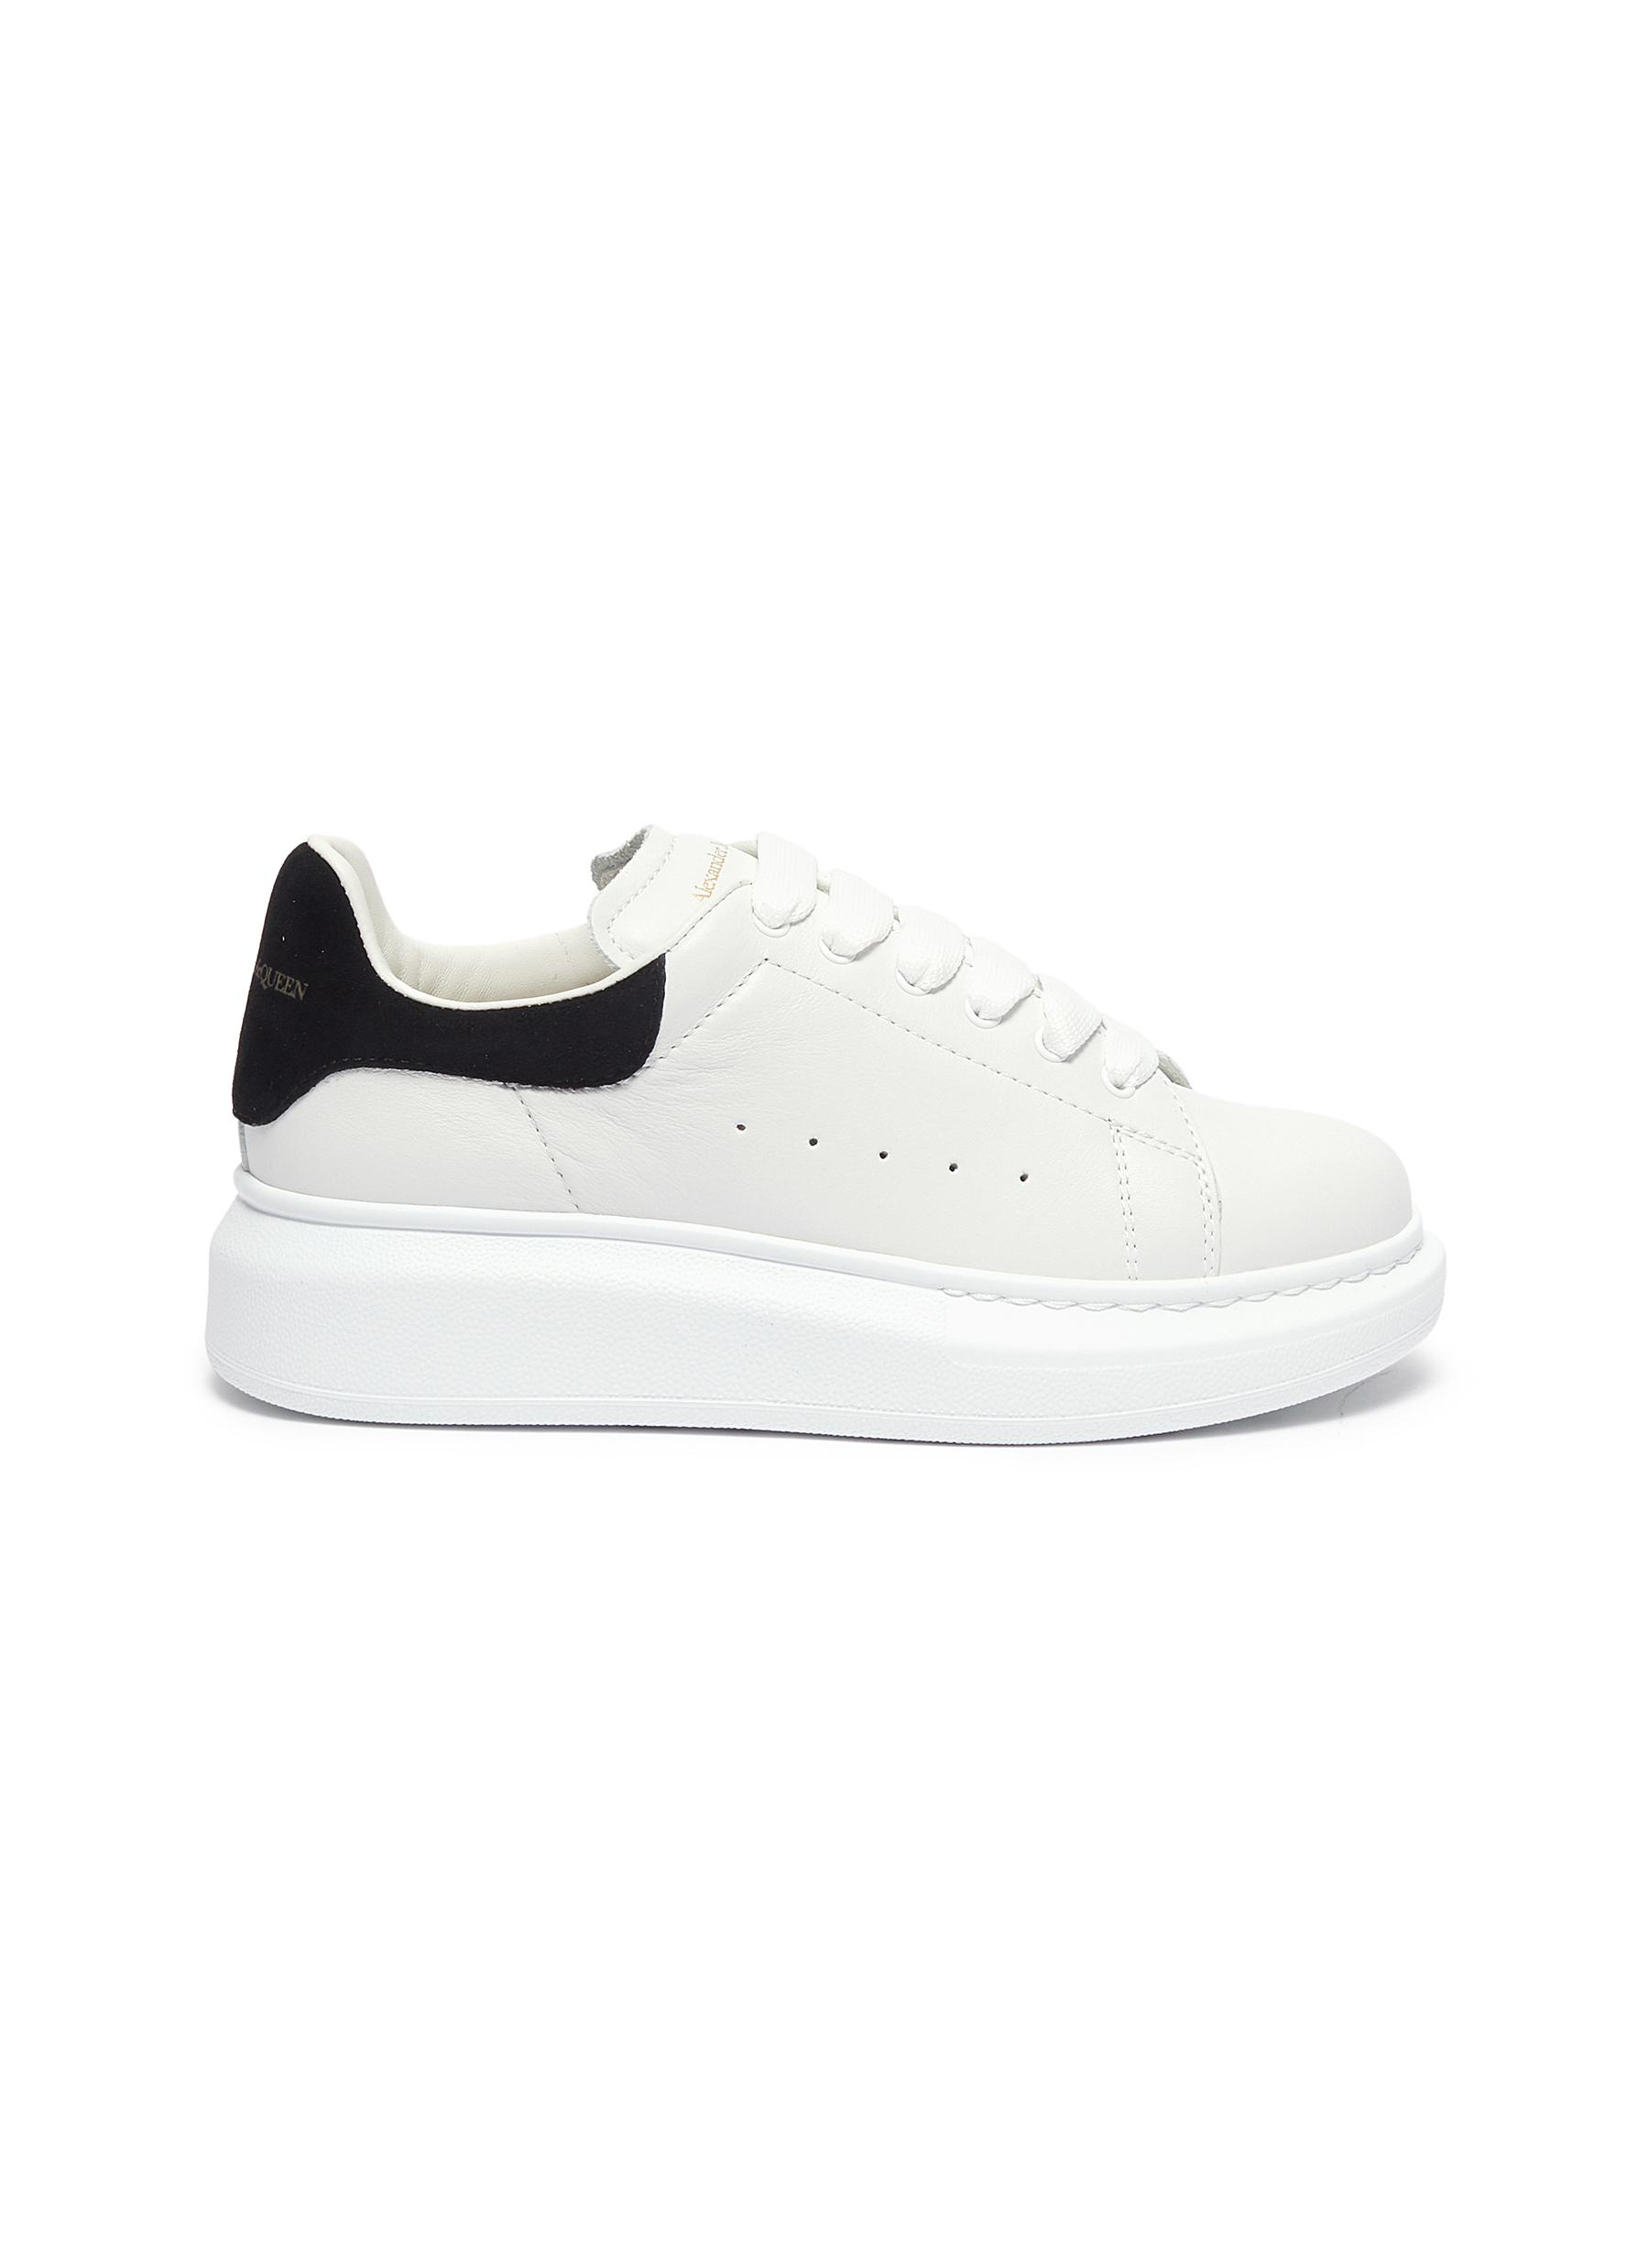 Oversized leather kids sneakers